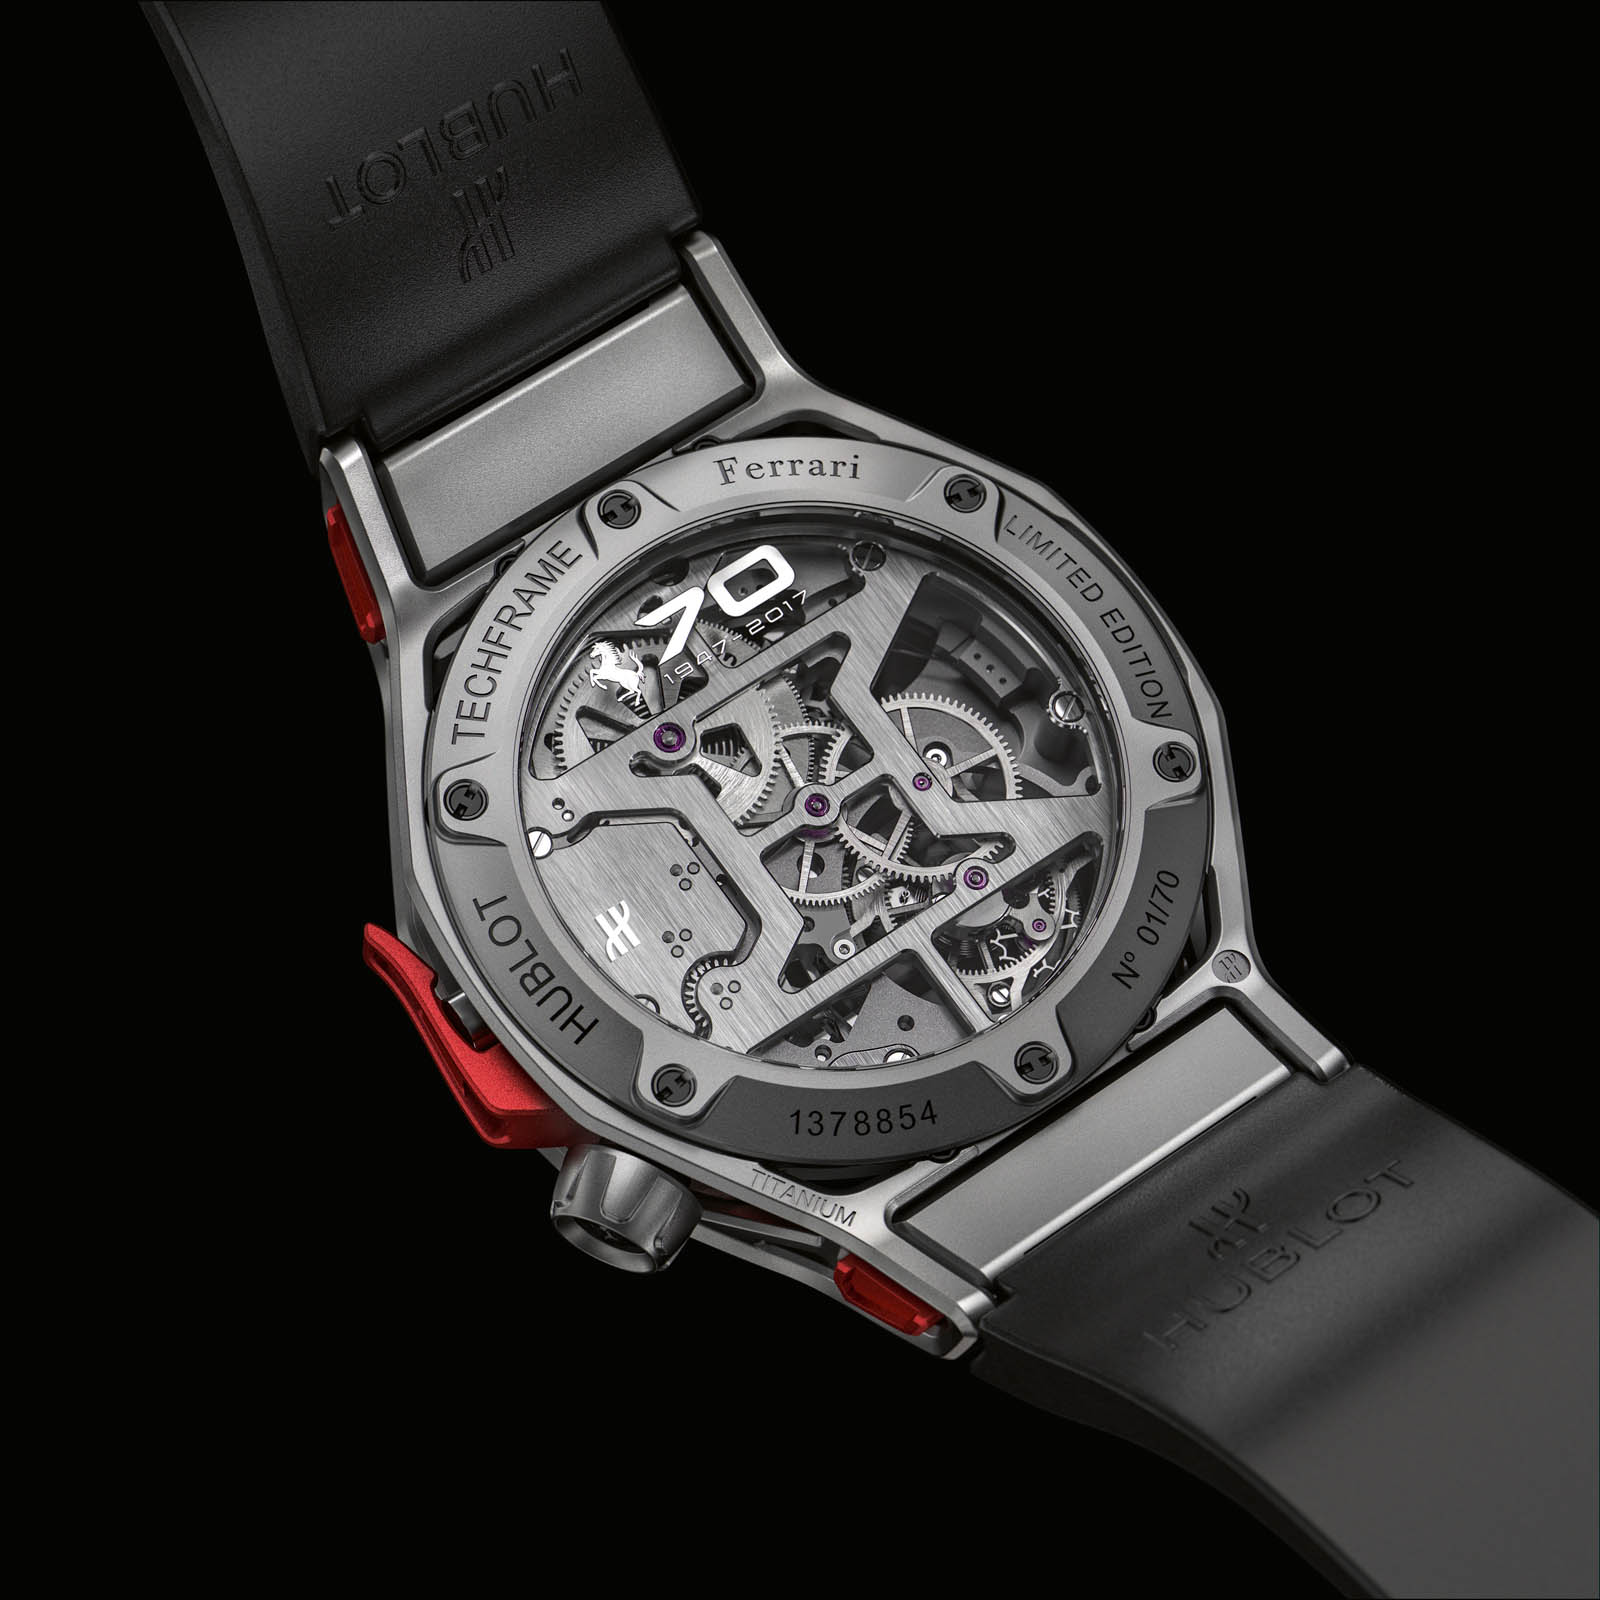 Hublot Techframe (14)